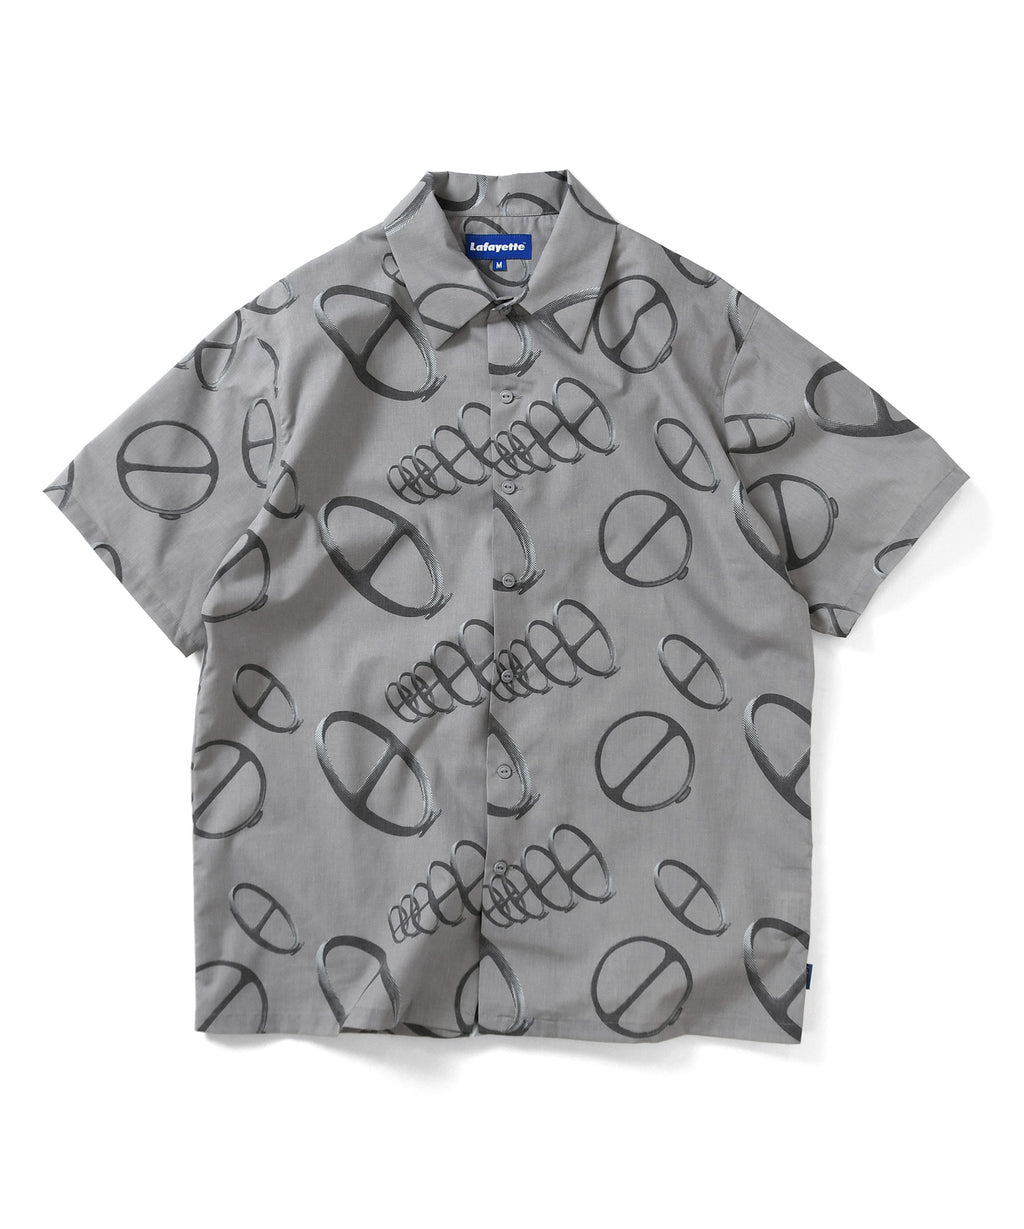 Lafayette CITYRACKS ALLOVER PATTERN S/S SHIRT LS200208 GRAY